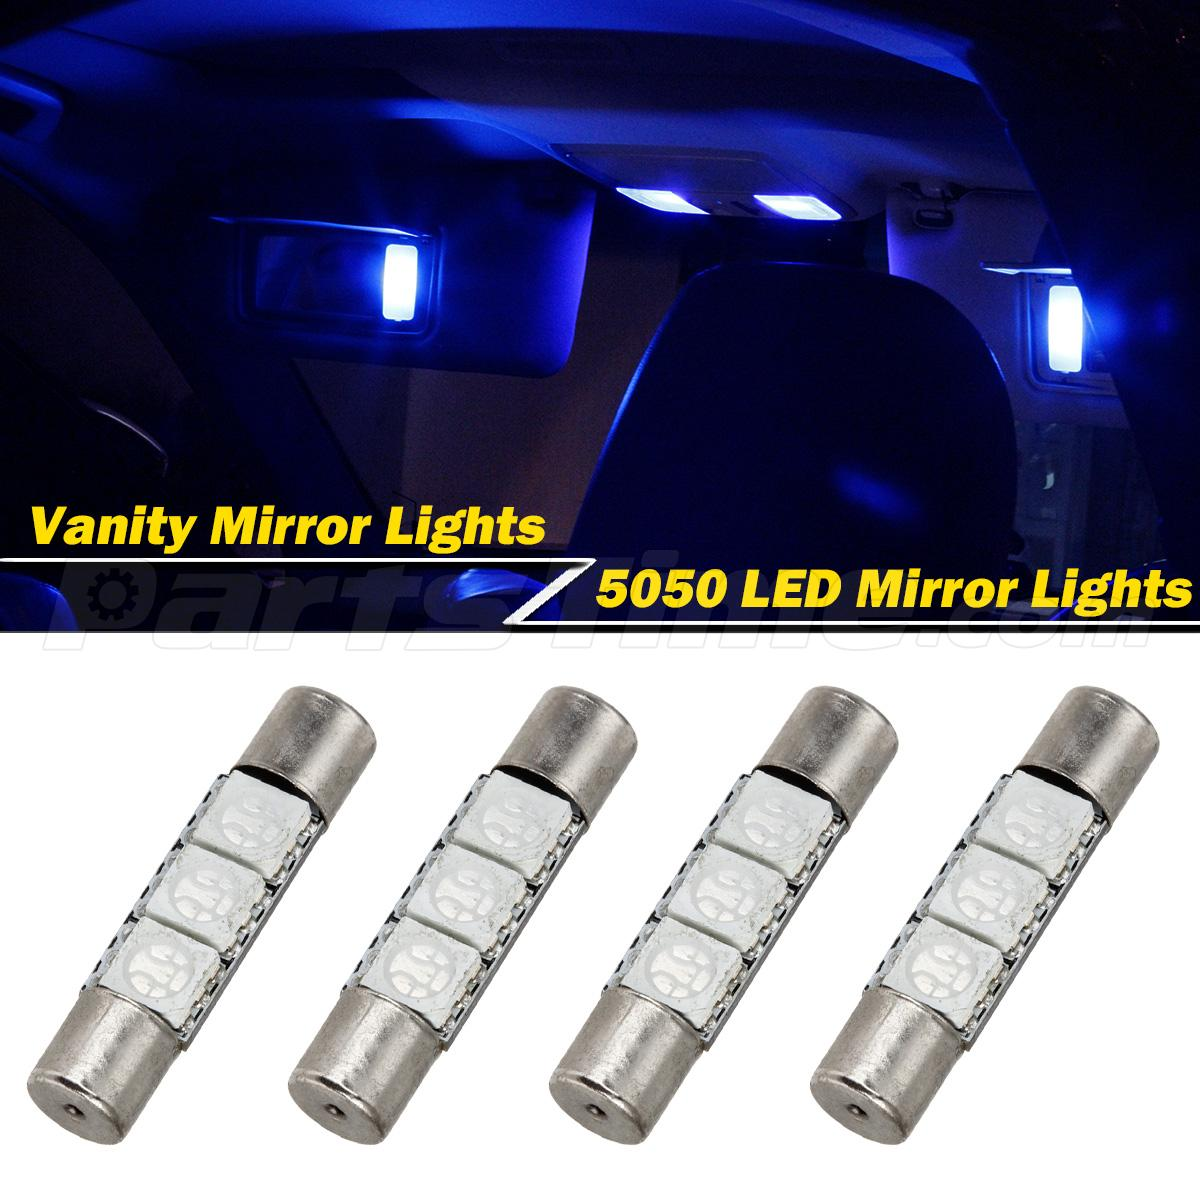 Vanity Mirror Lights In Car : 4 Xenon Blue 3 SMD 6641 LED Bulbs for Car Sun Visor Vanity Mirror Lights eBay